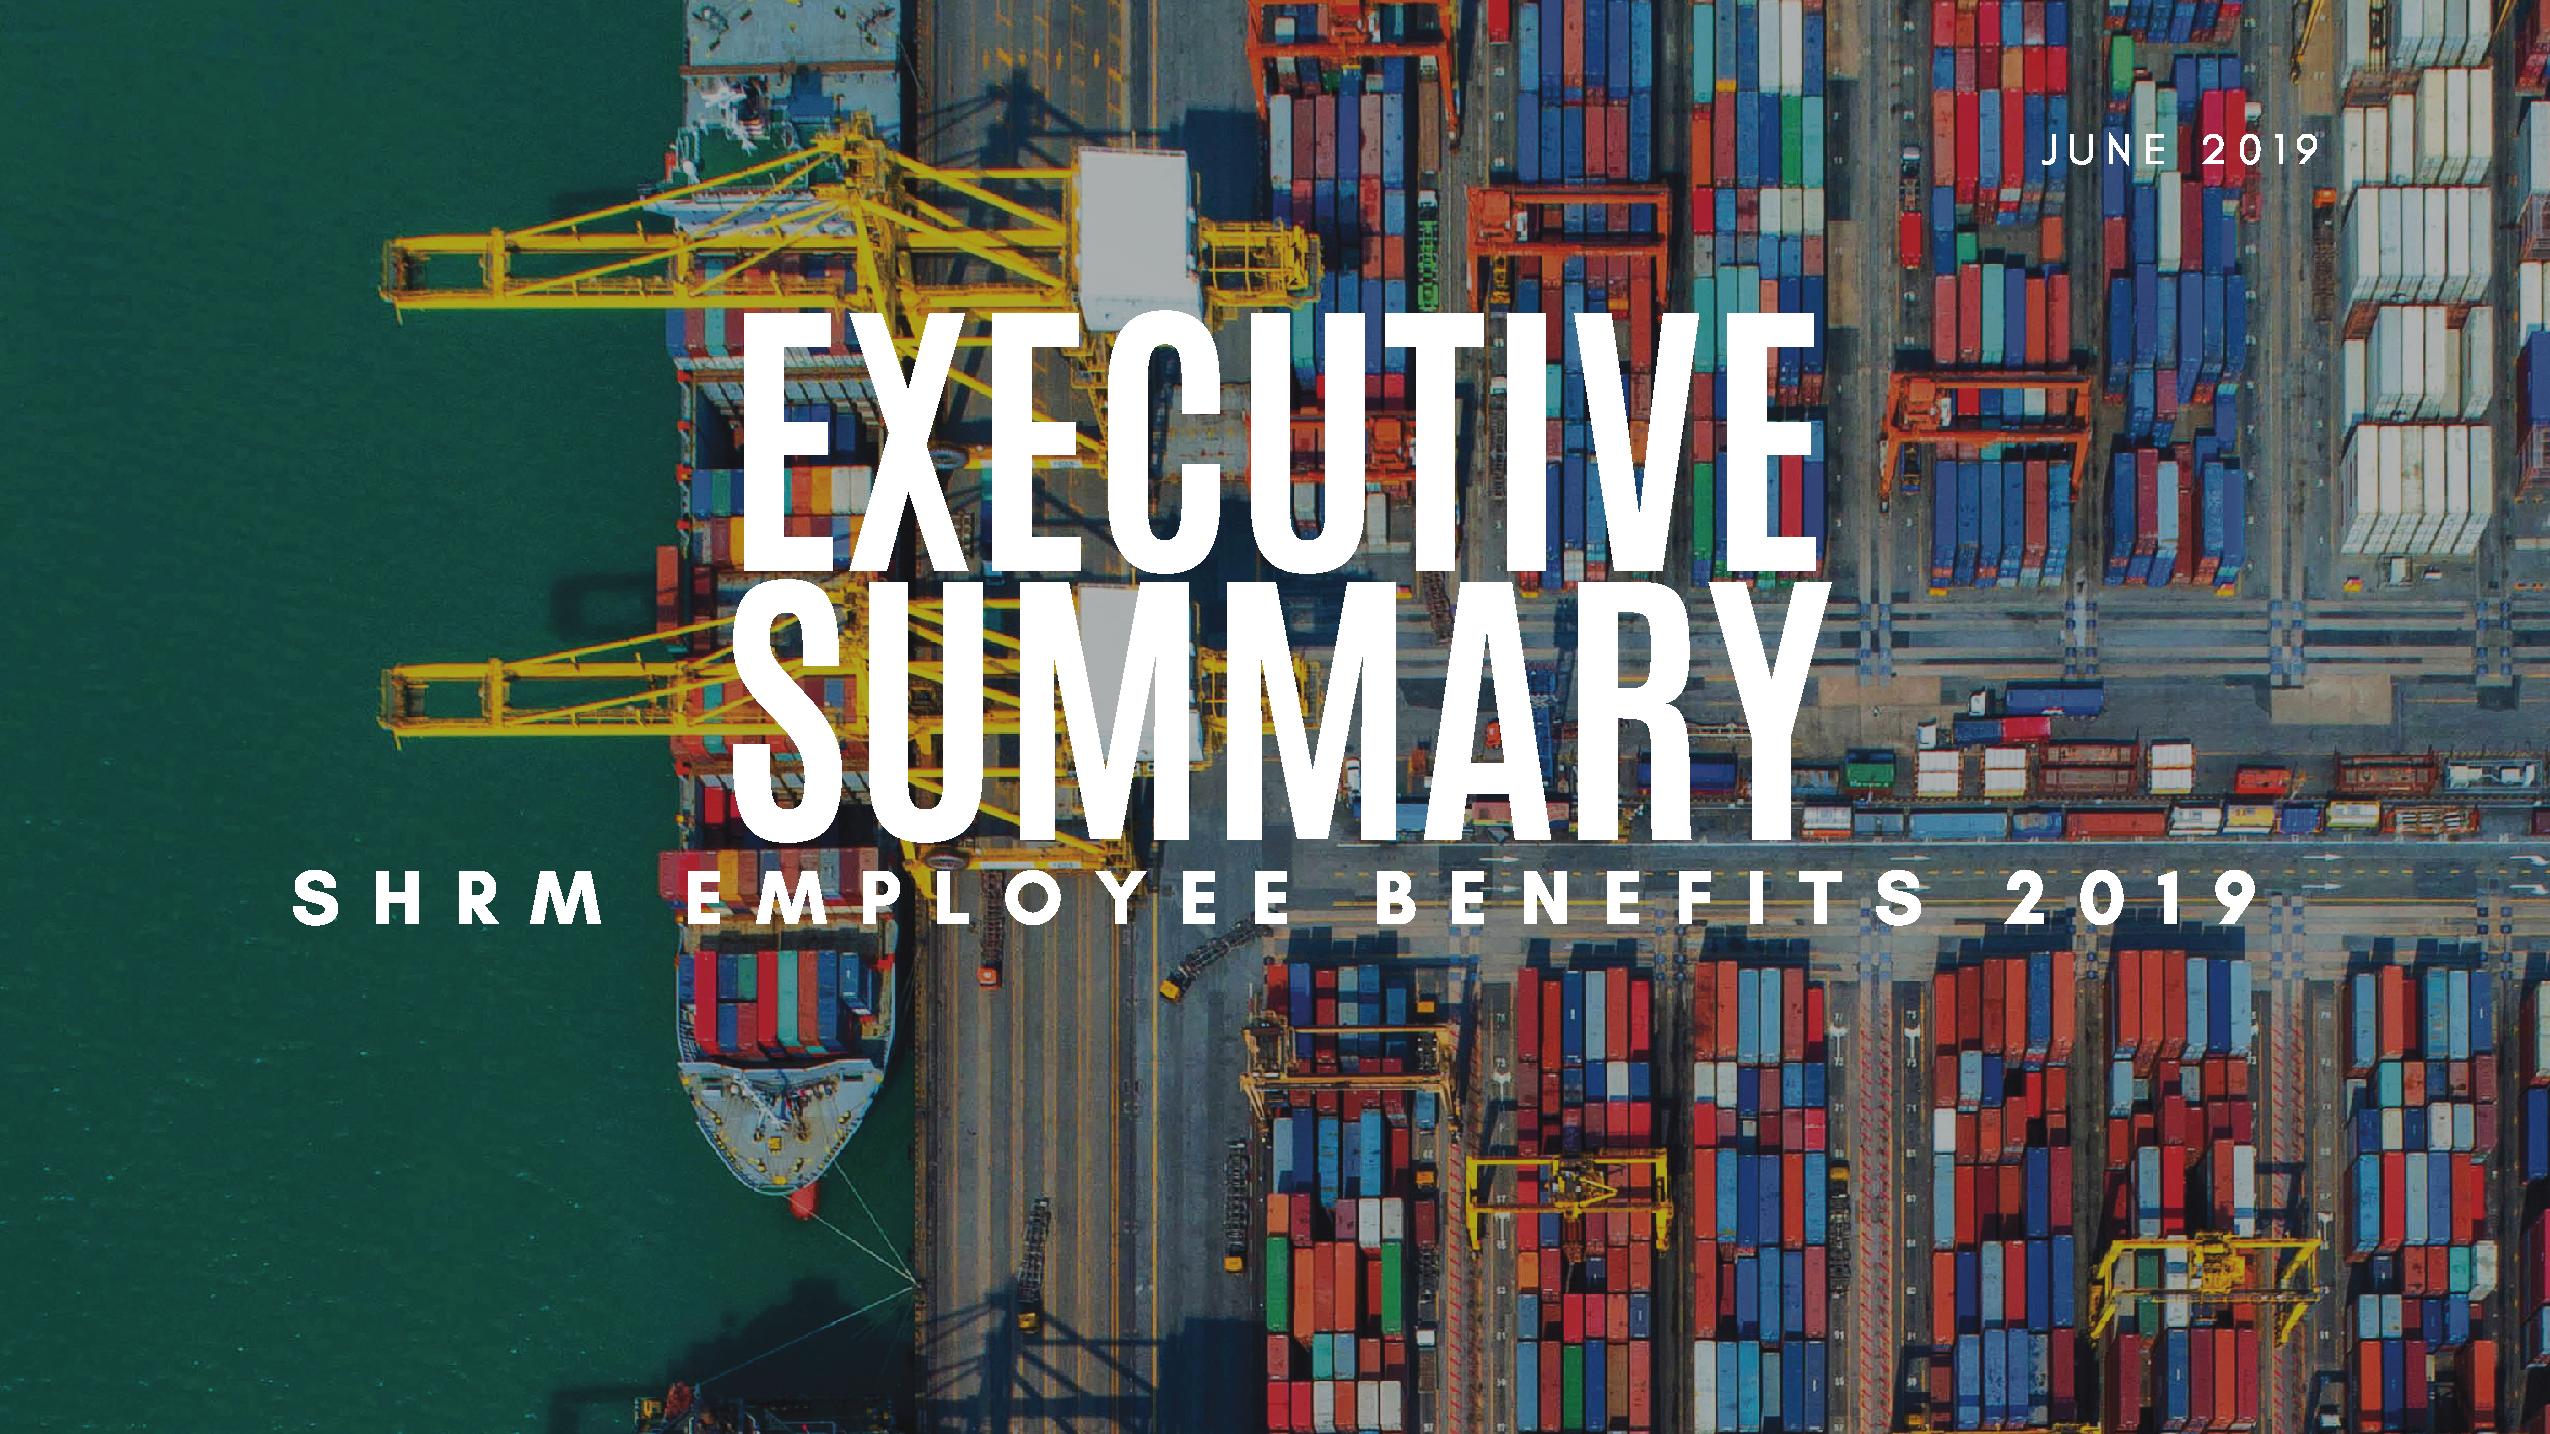 SHRM Employee Benefits 2019 Executive Summary Crop.png